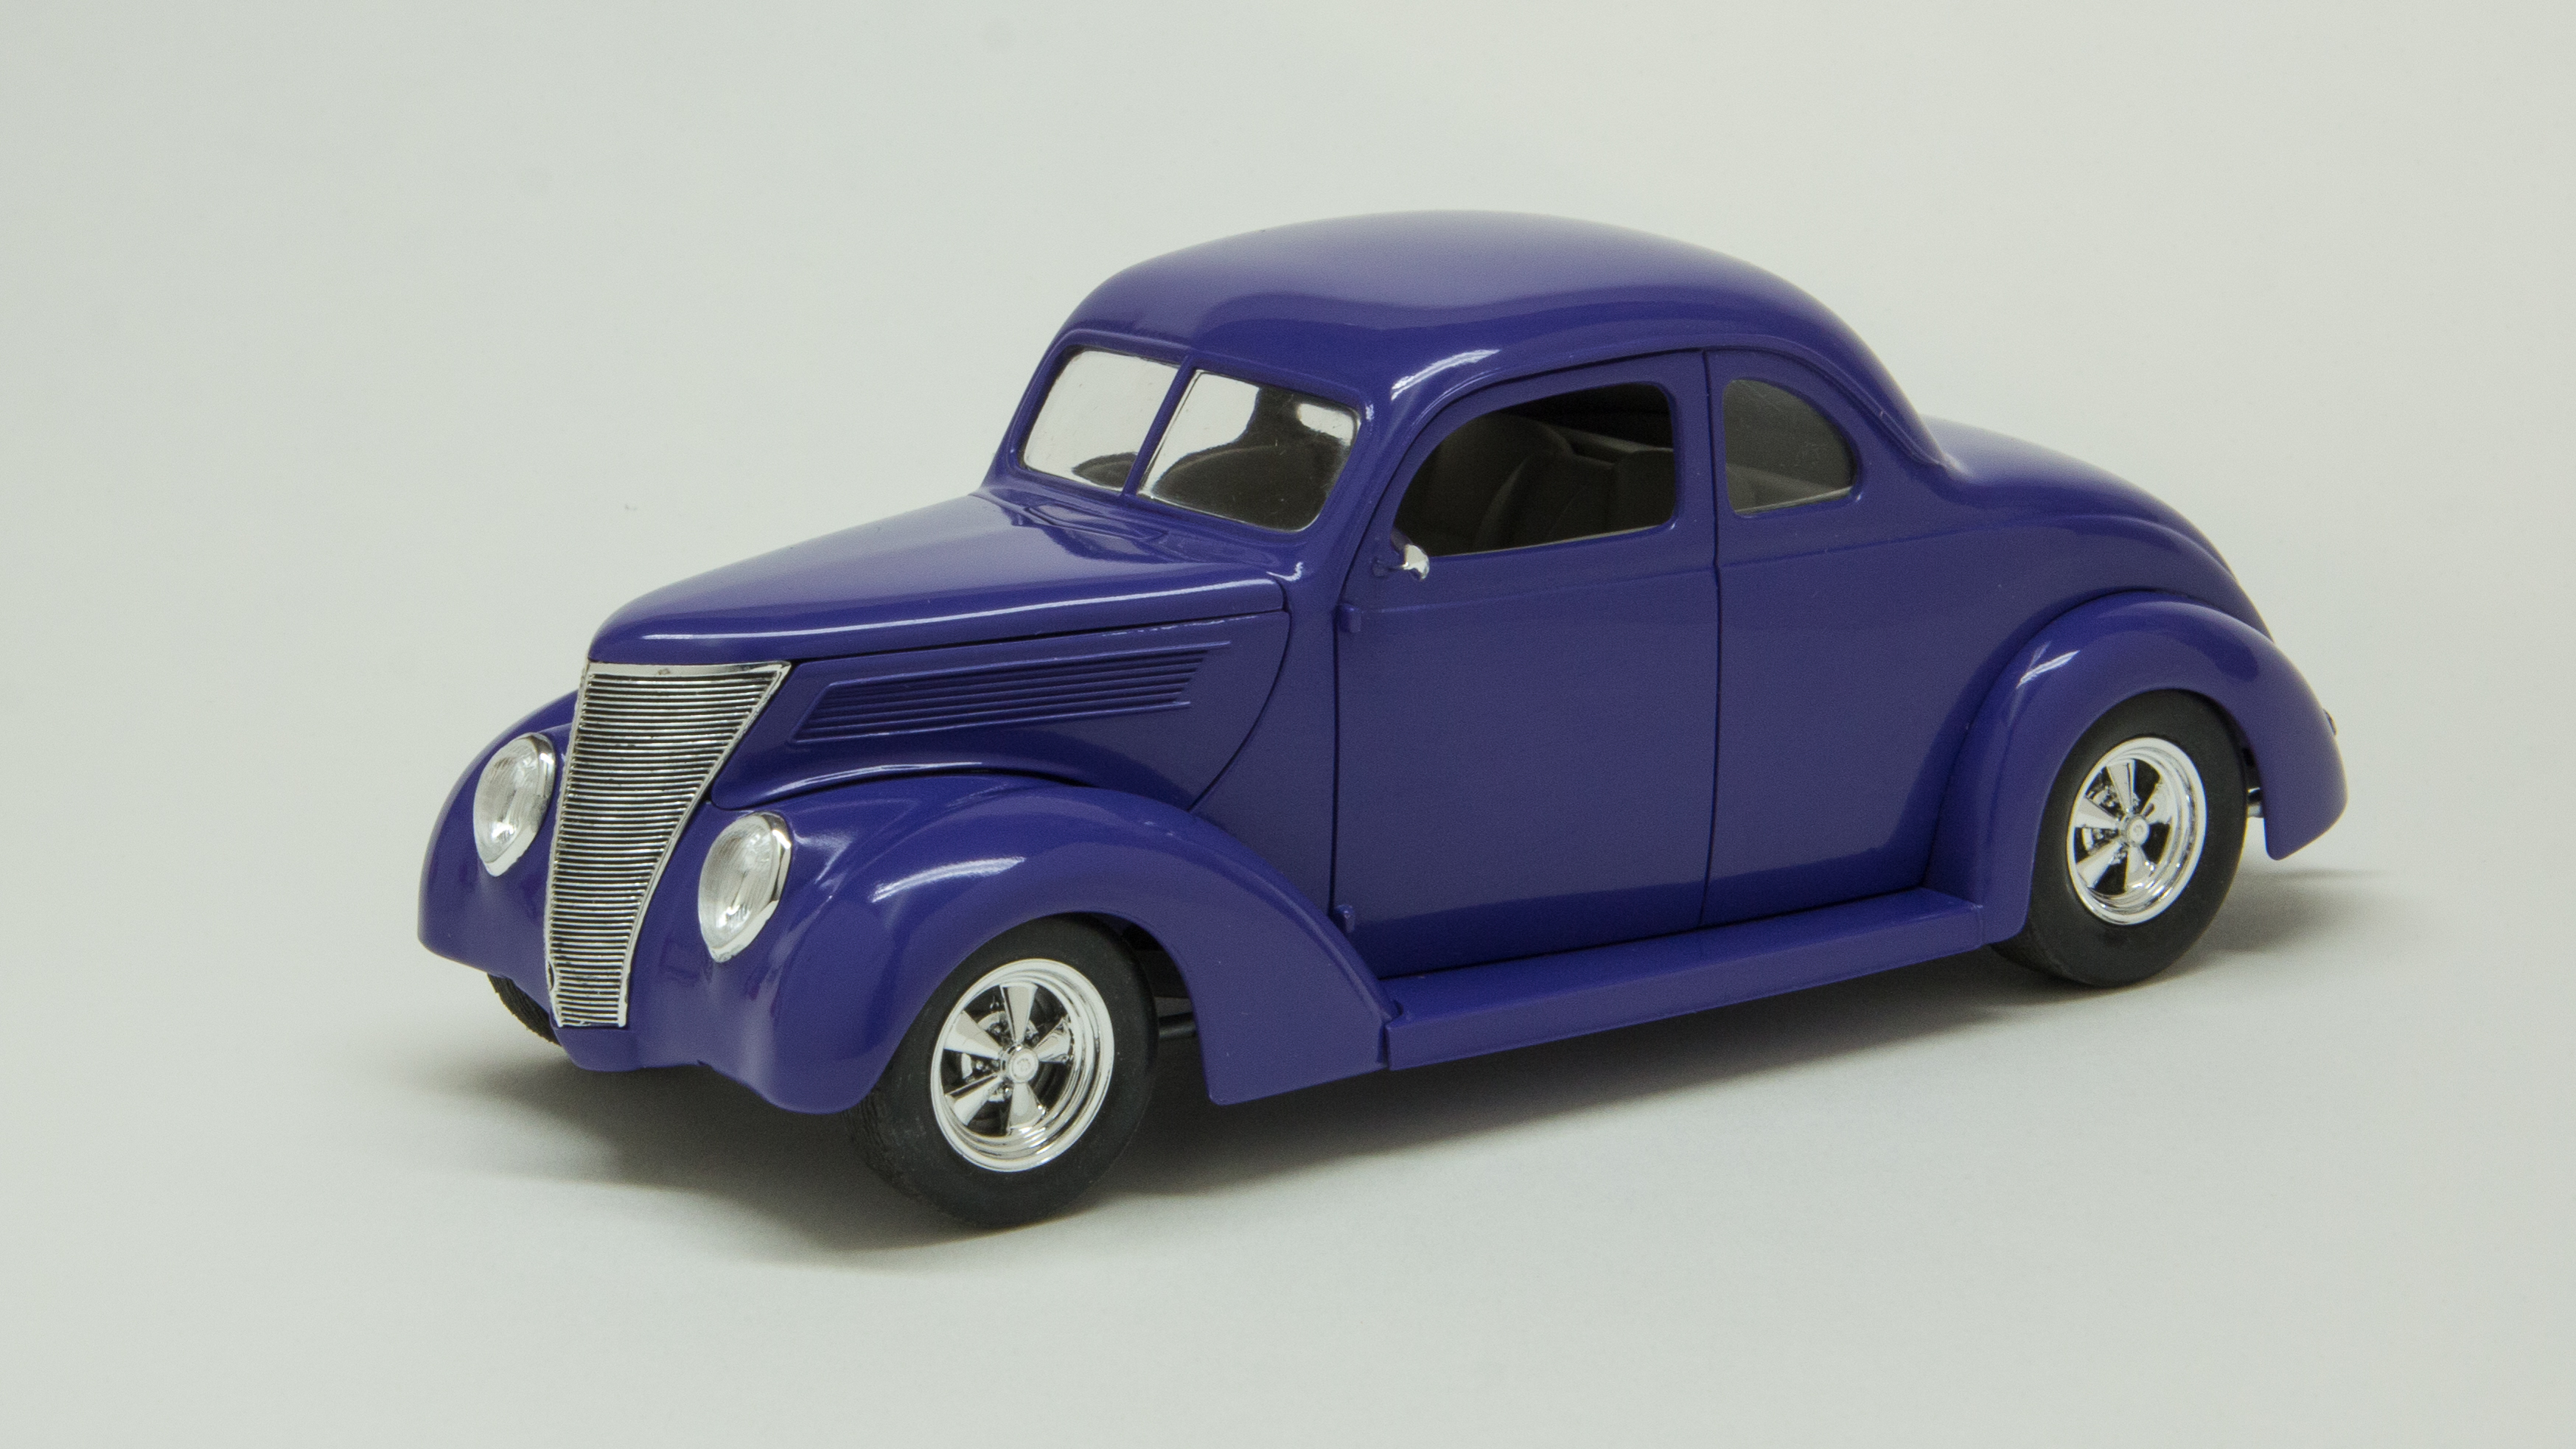 37 Ford #9020